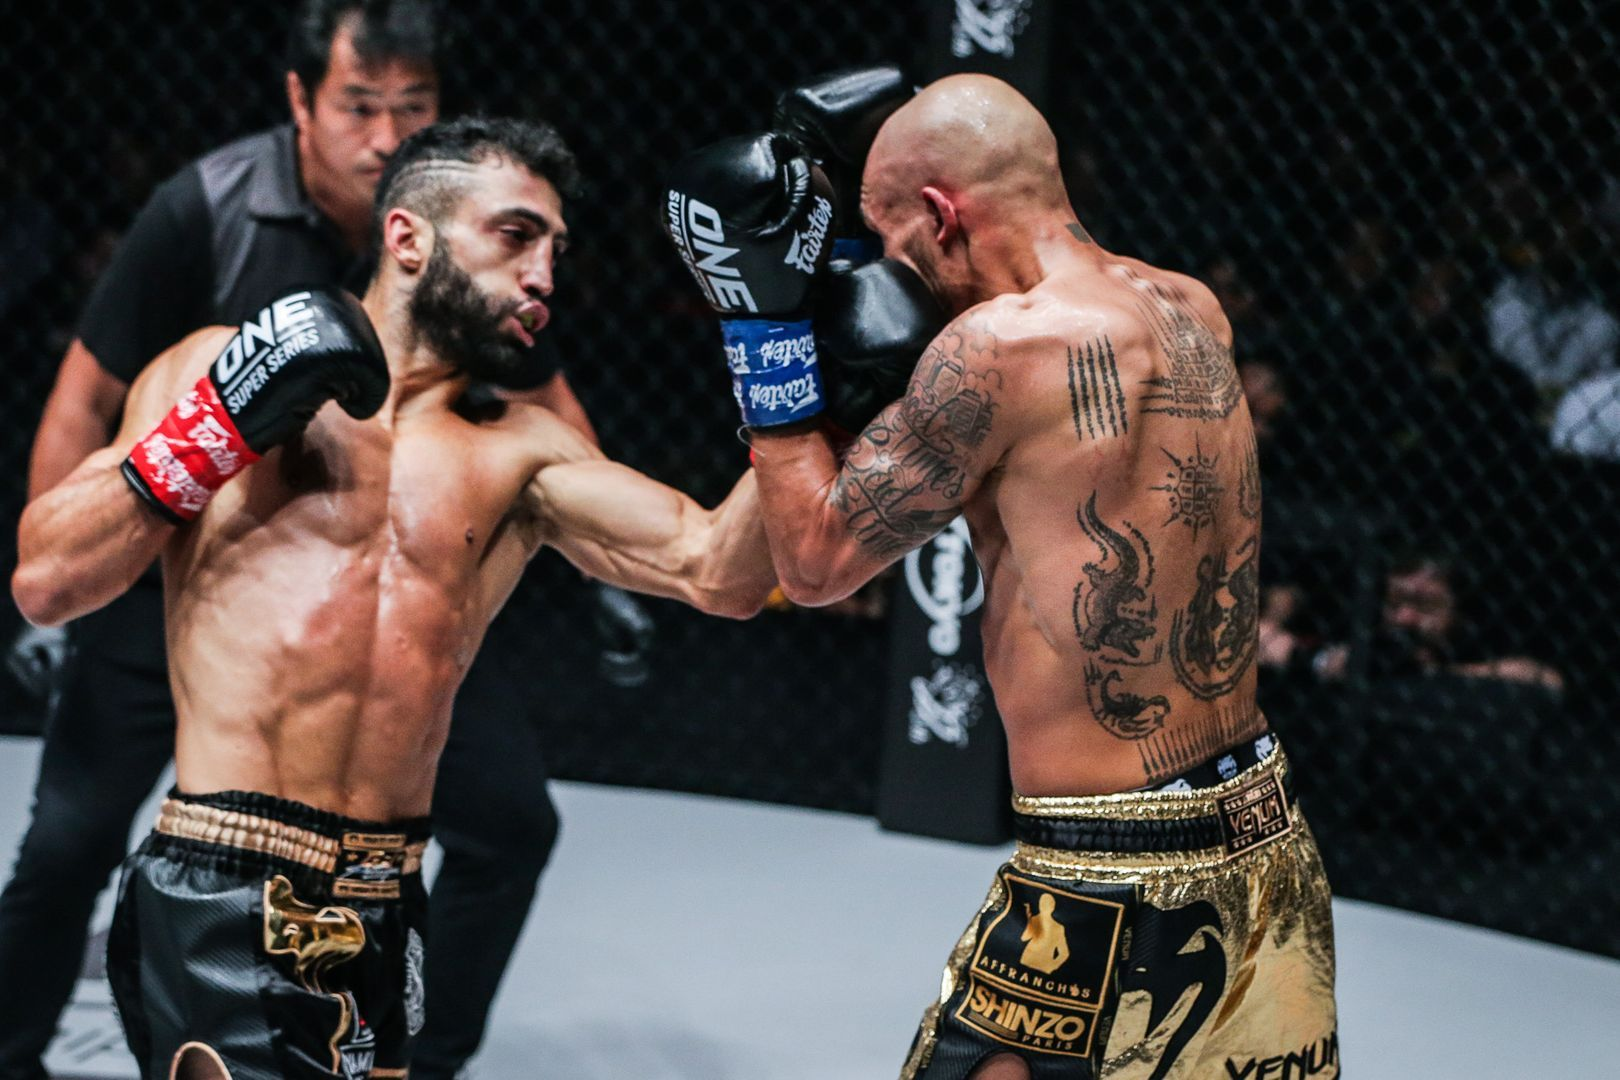 Giorgio Petrosyan attacks Samy Sana At ONE CENTURY PART II